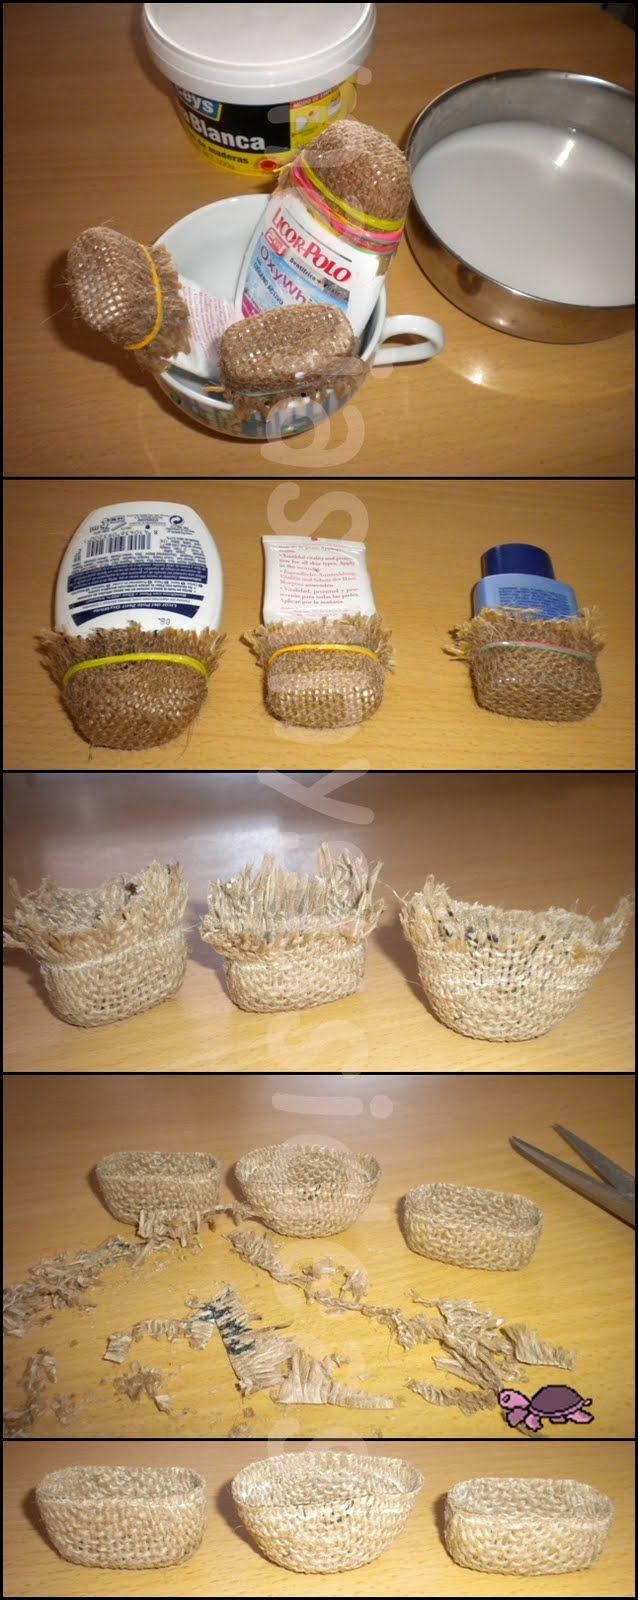 a little burlap, rubber bands, plastic or glass bottles in the shapes you want; dip in liquid Stiffy stiffener, let dry, remove and trim - cute little baskets